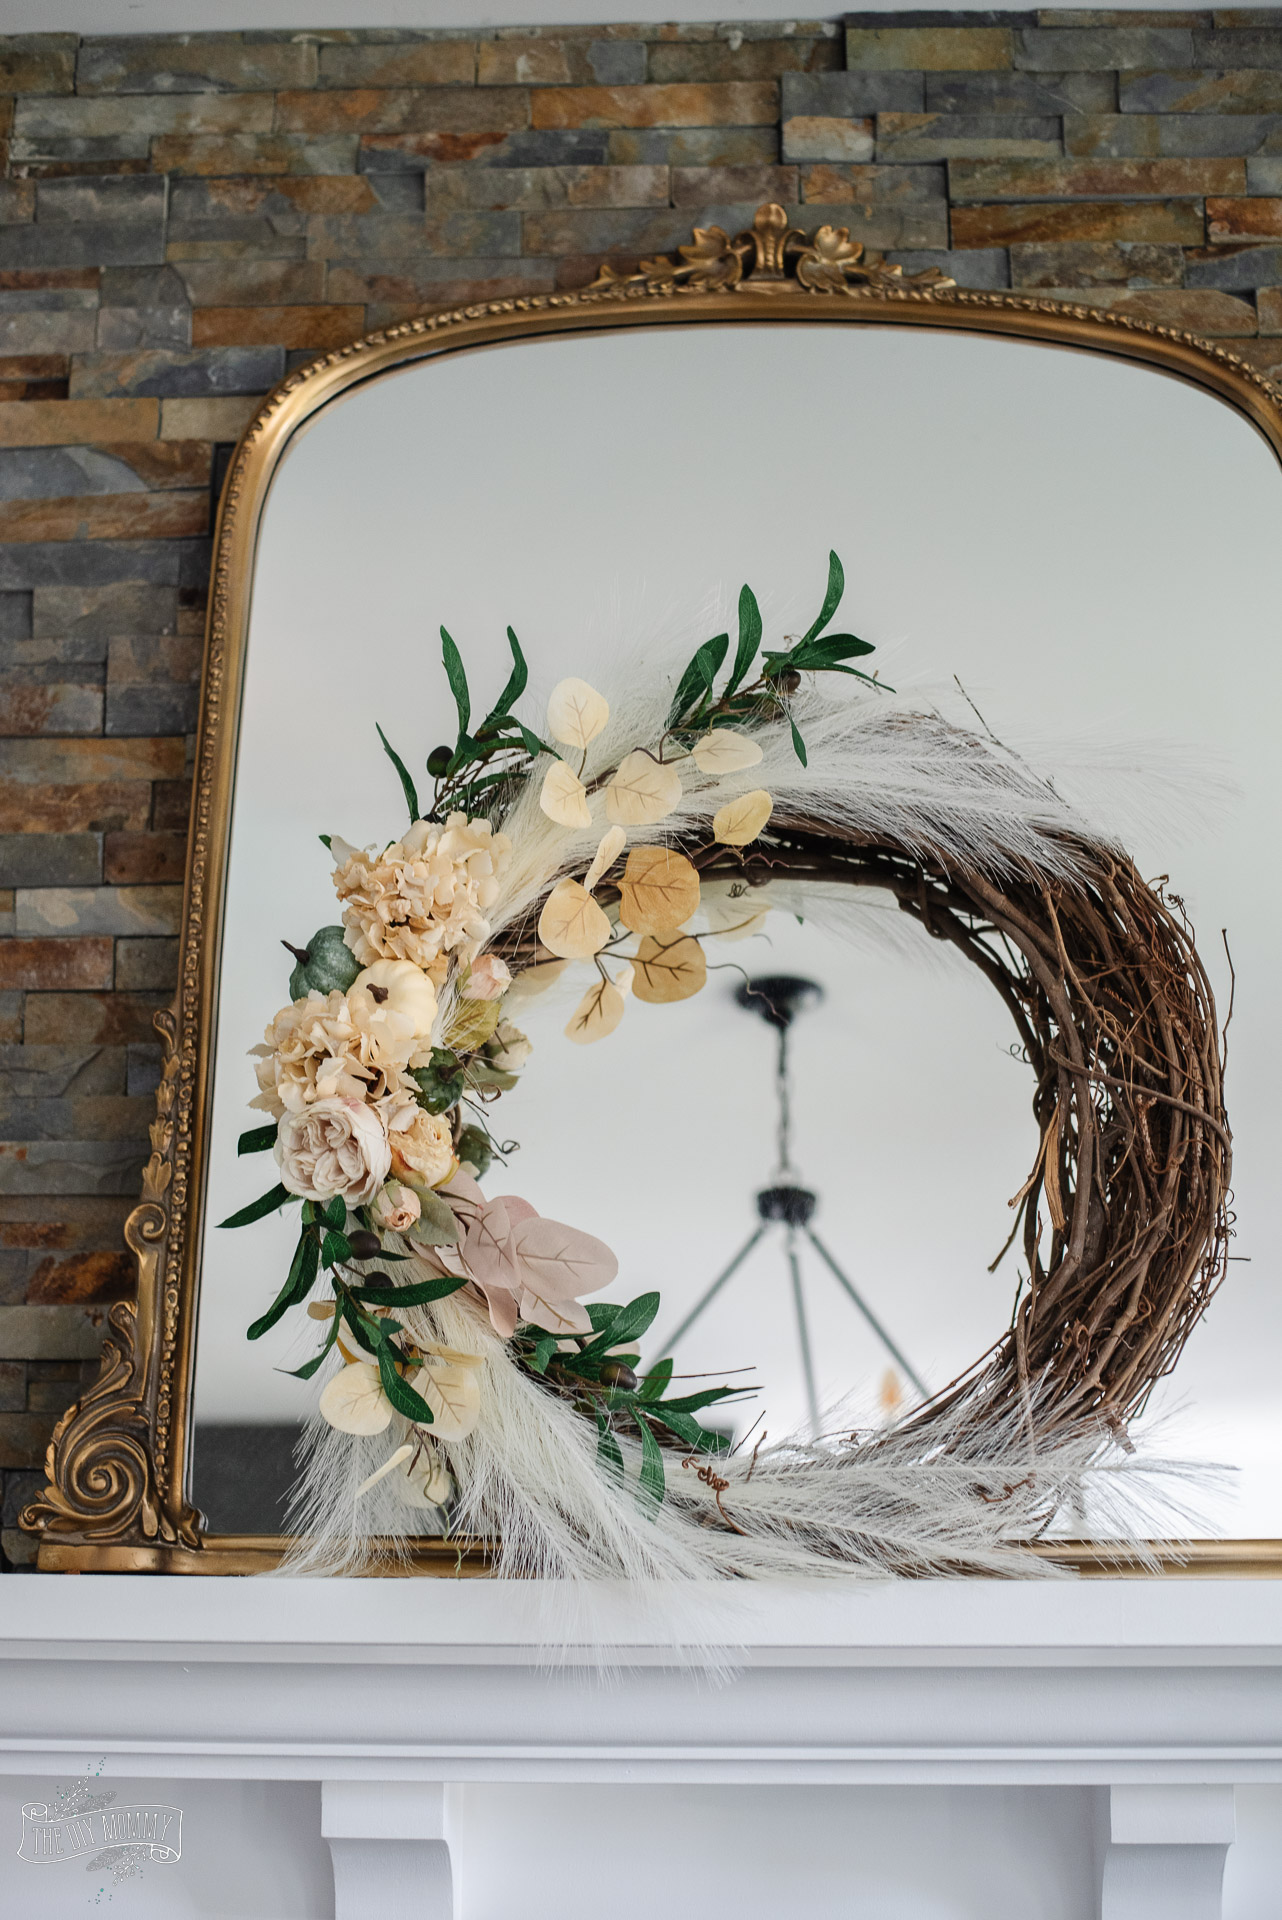 Learn how to make a DIY Fall wreath featuring a grapevine base, muted Fall colors of cream and green, faux pampas grass, florals and olive branches.